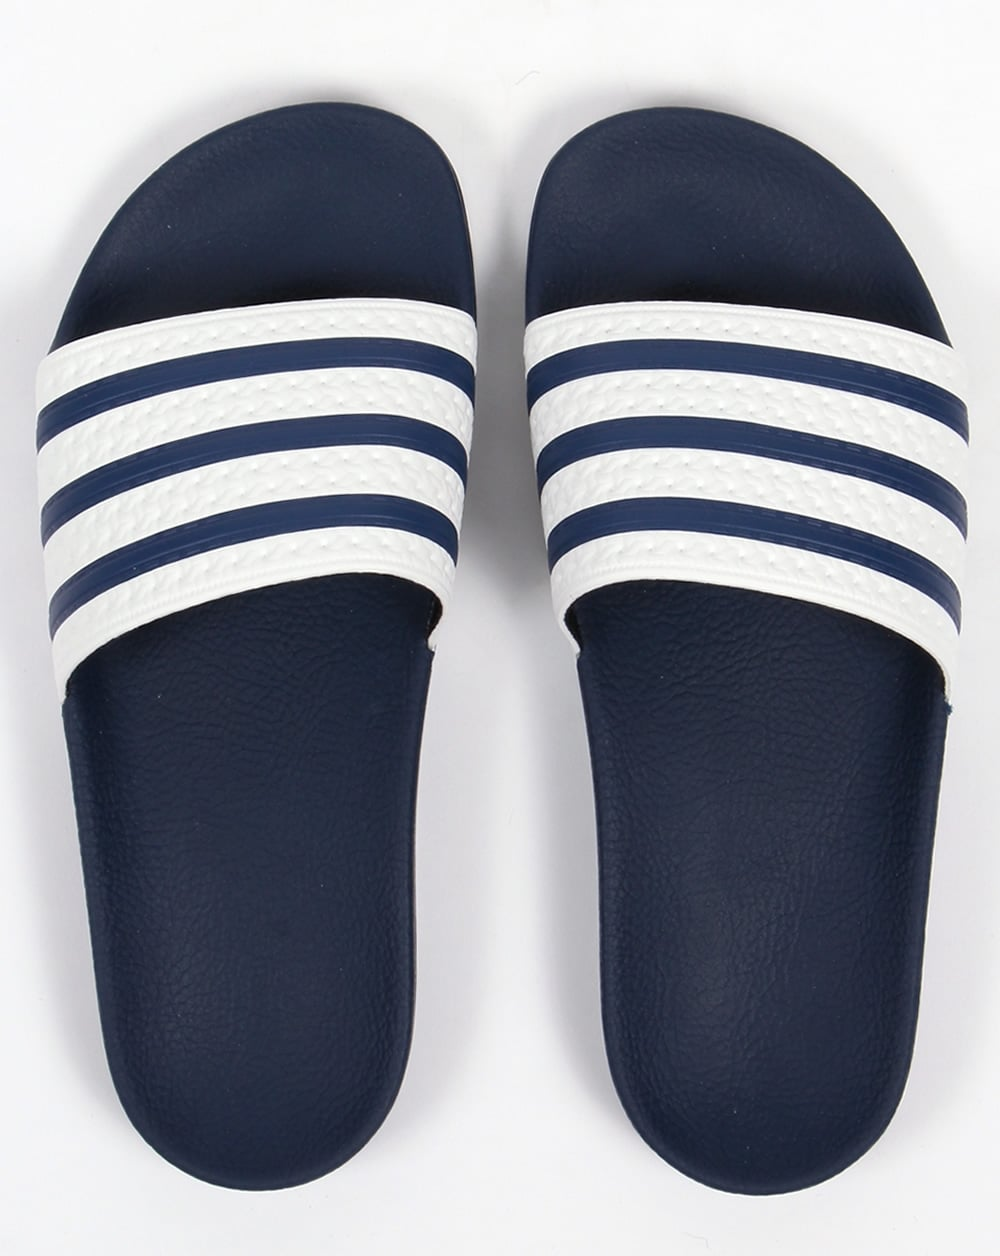 the latest 7d57e 7f028 Adidas Adilette Sliders WhiteNavy